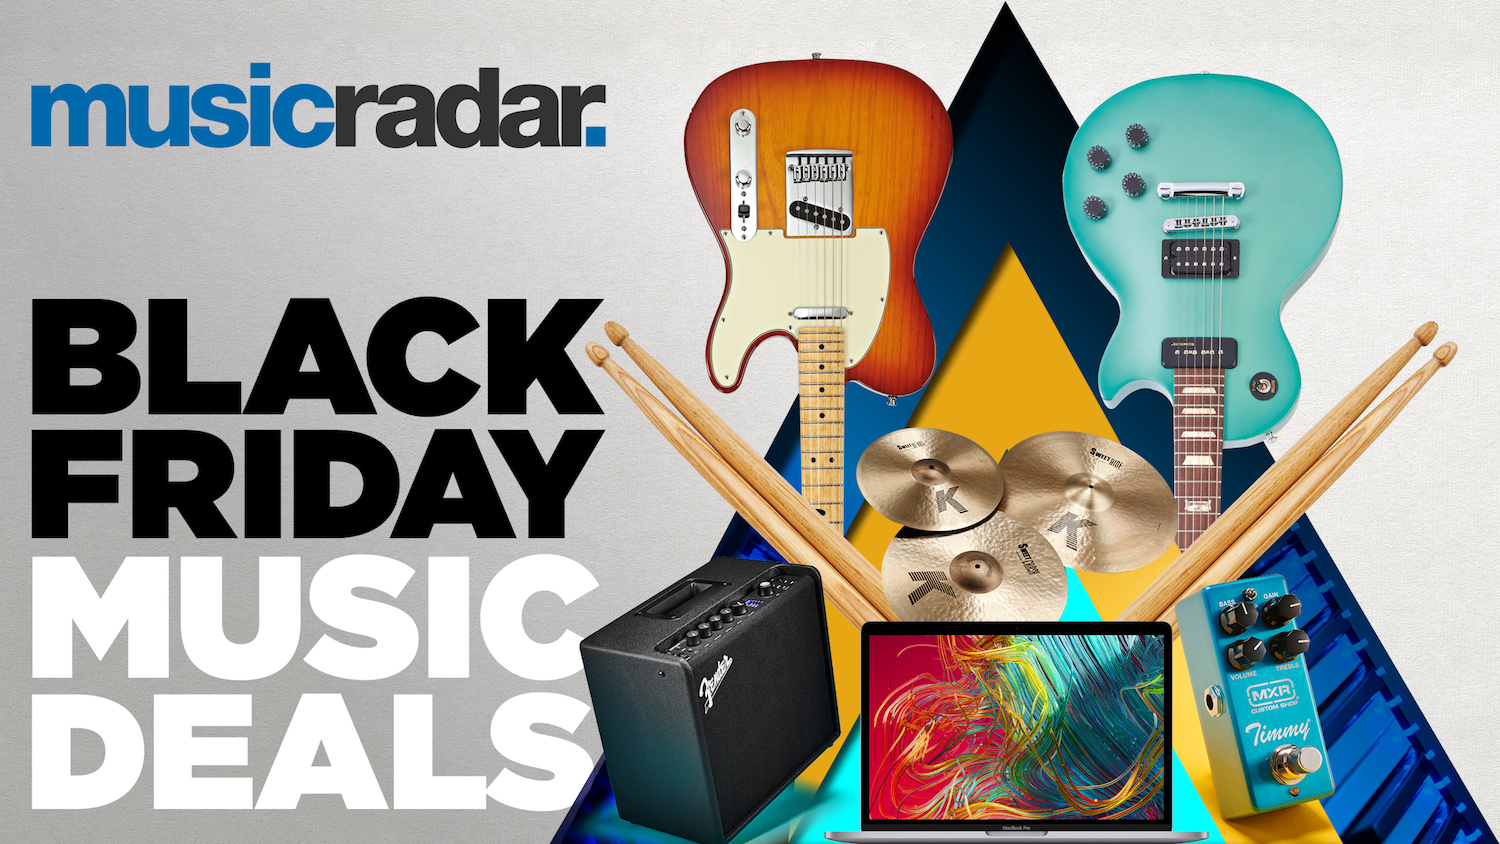 Black Friday Music Deals 2020 These Deals For Musicians Are Still Live Musicradar